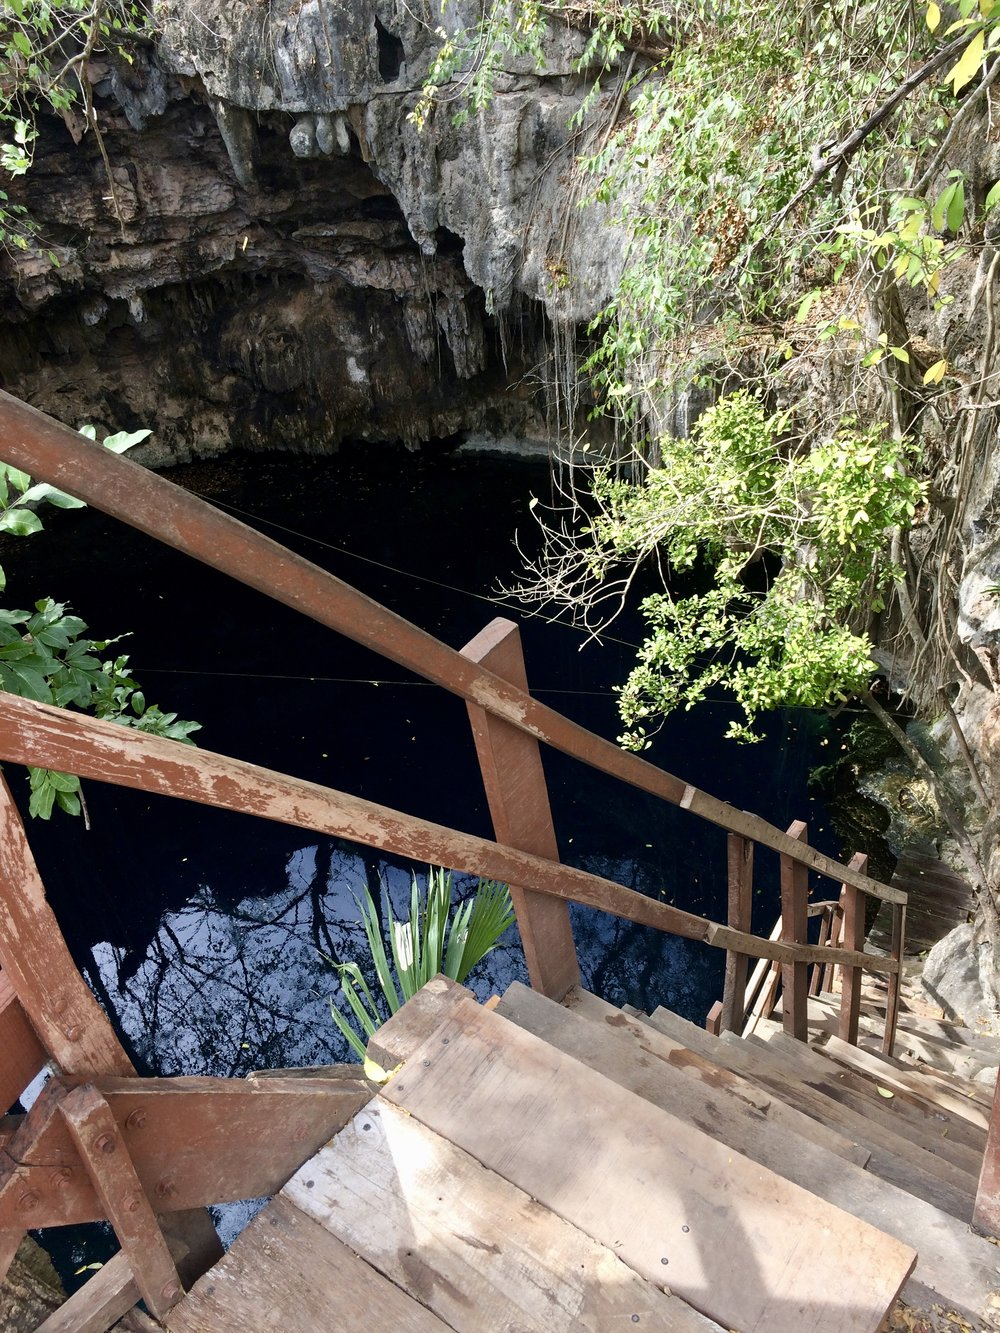 Cenote #3 - anyone care for a jump?